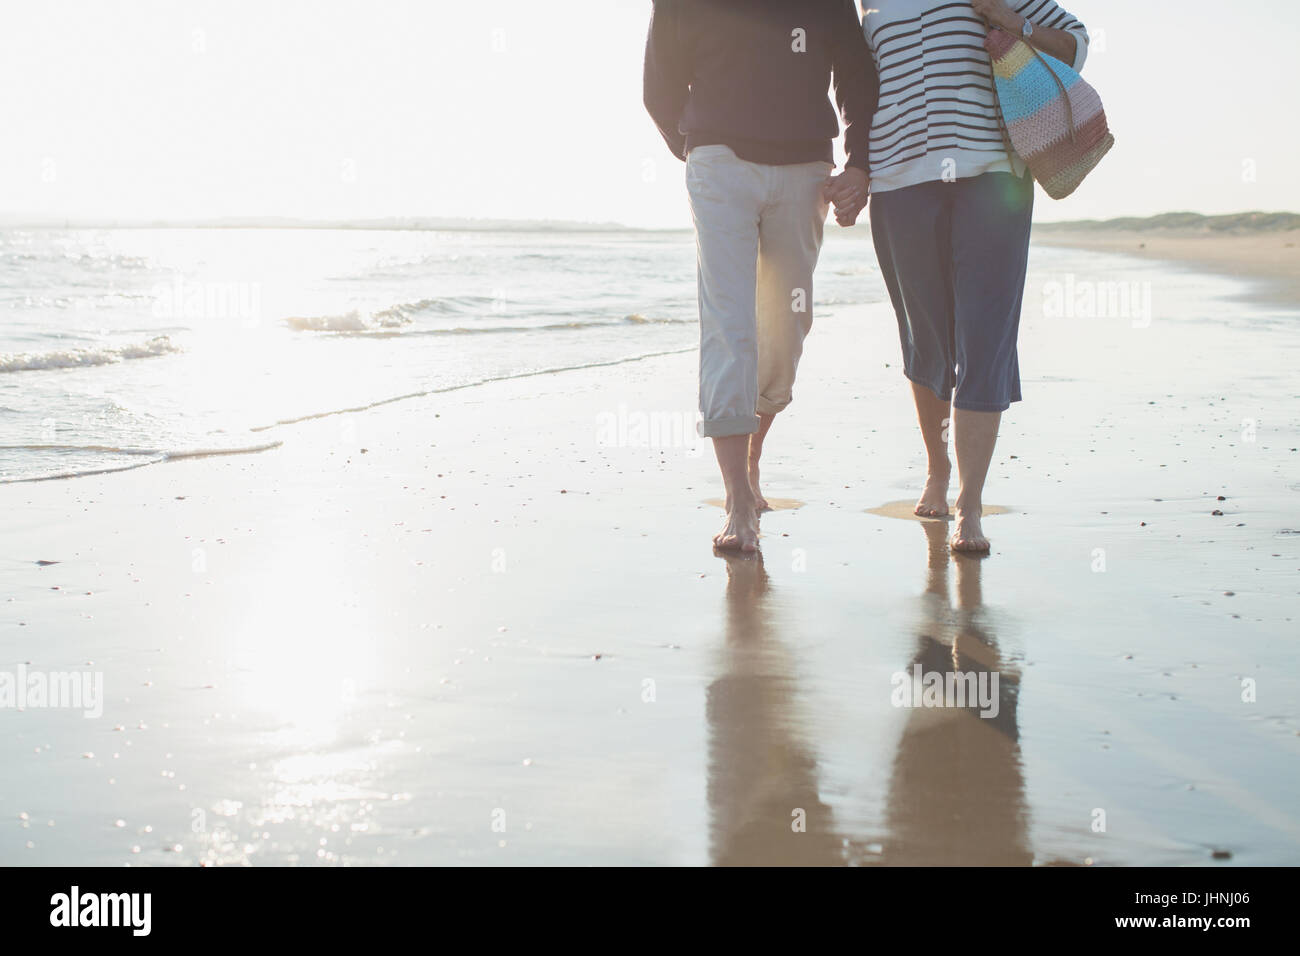 Affectionate barefoot mature couple walking, holding hands in sunny ocean beach surf - Stock Image